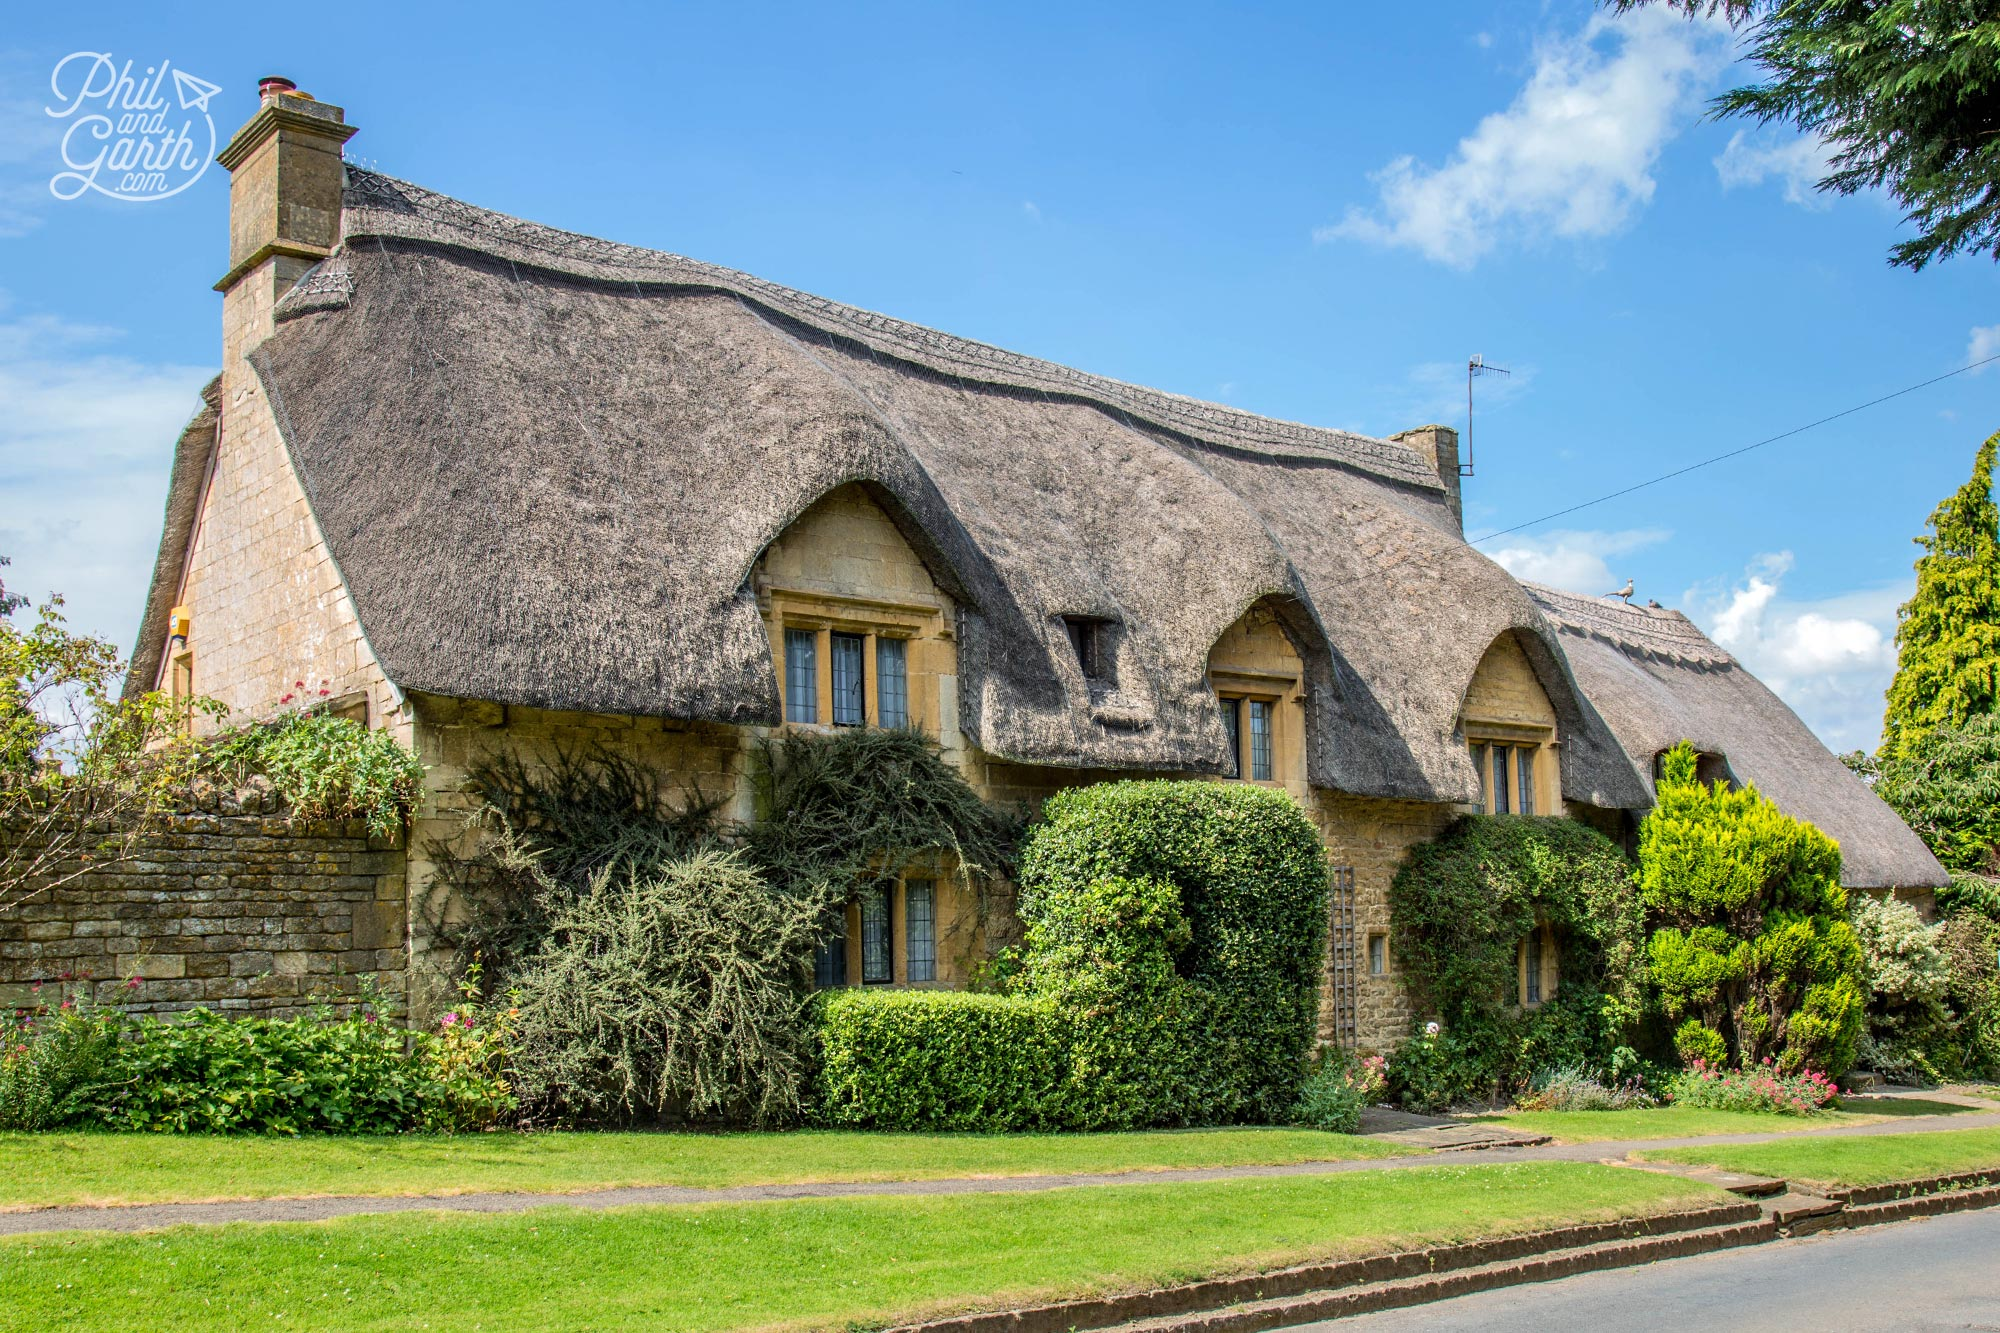 Another fine example of a Cotswold thatched cottage